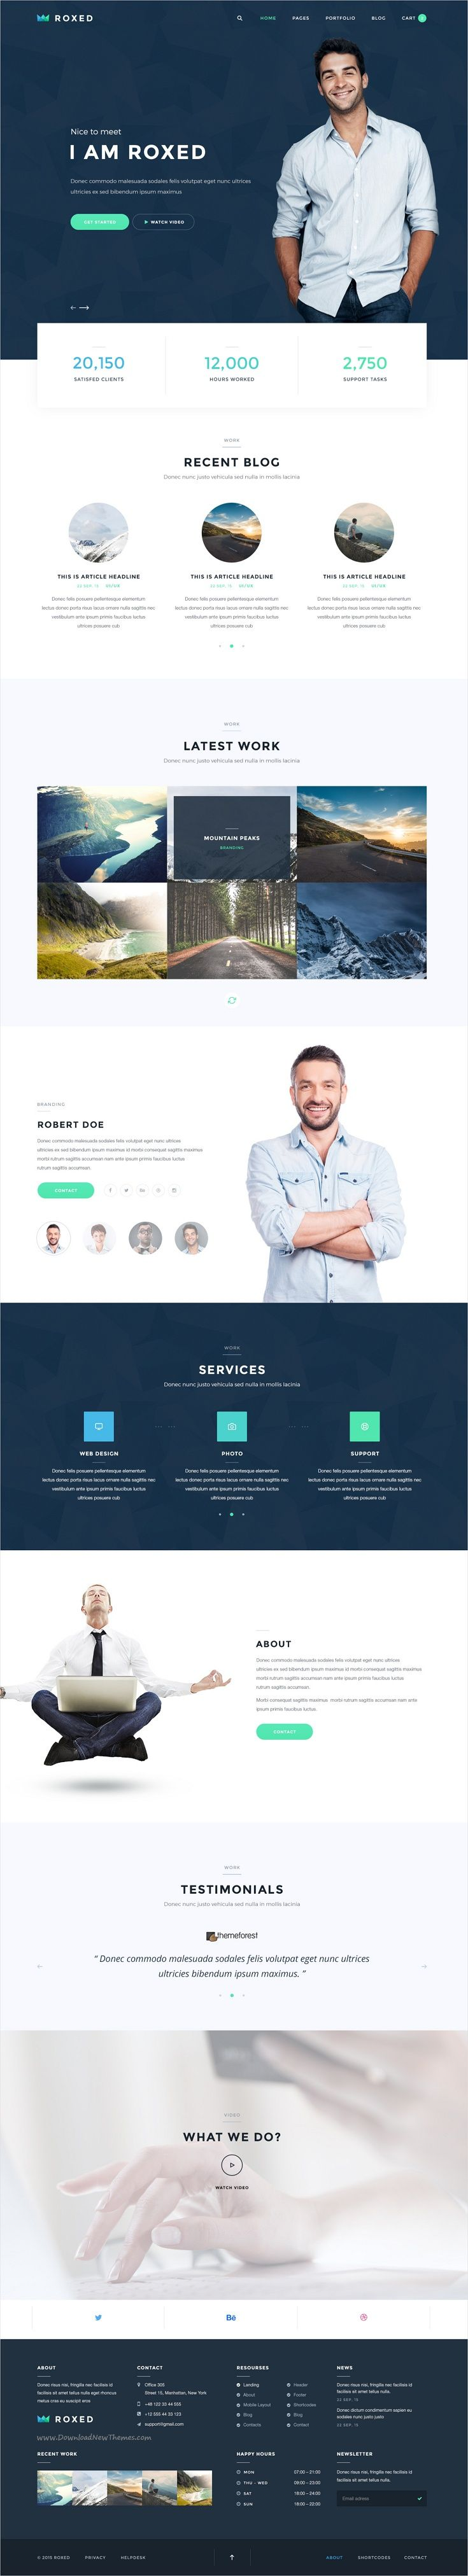 Roxed is single page clean and modern design #Photoshop #theme for #freelancer, business, corporate or personal website with 3 unique homepage layouts download now➩ https://themeforest.net/item/roxed-landing-page-psd-template/17460331?ref=Datasata